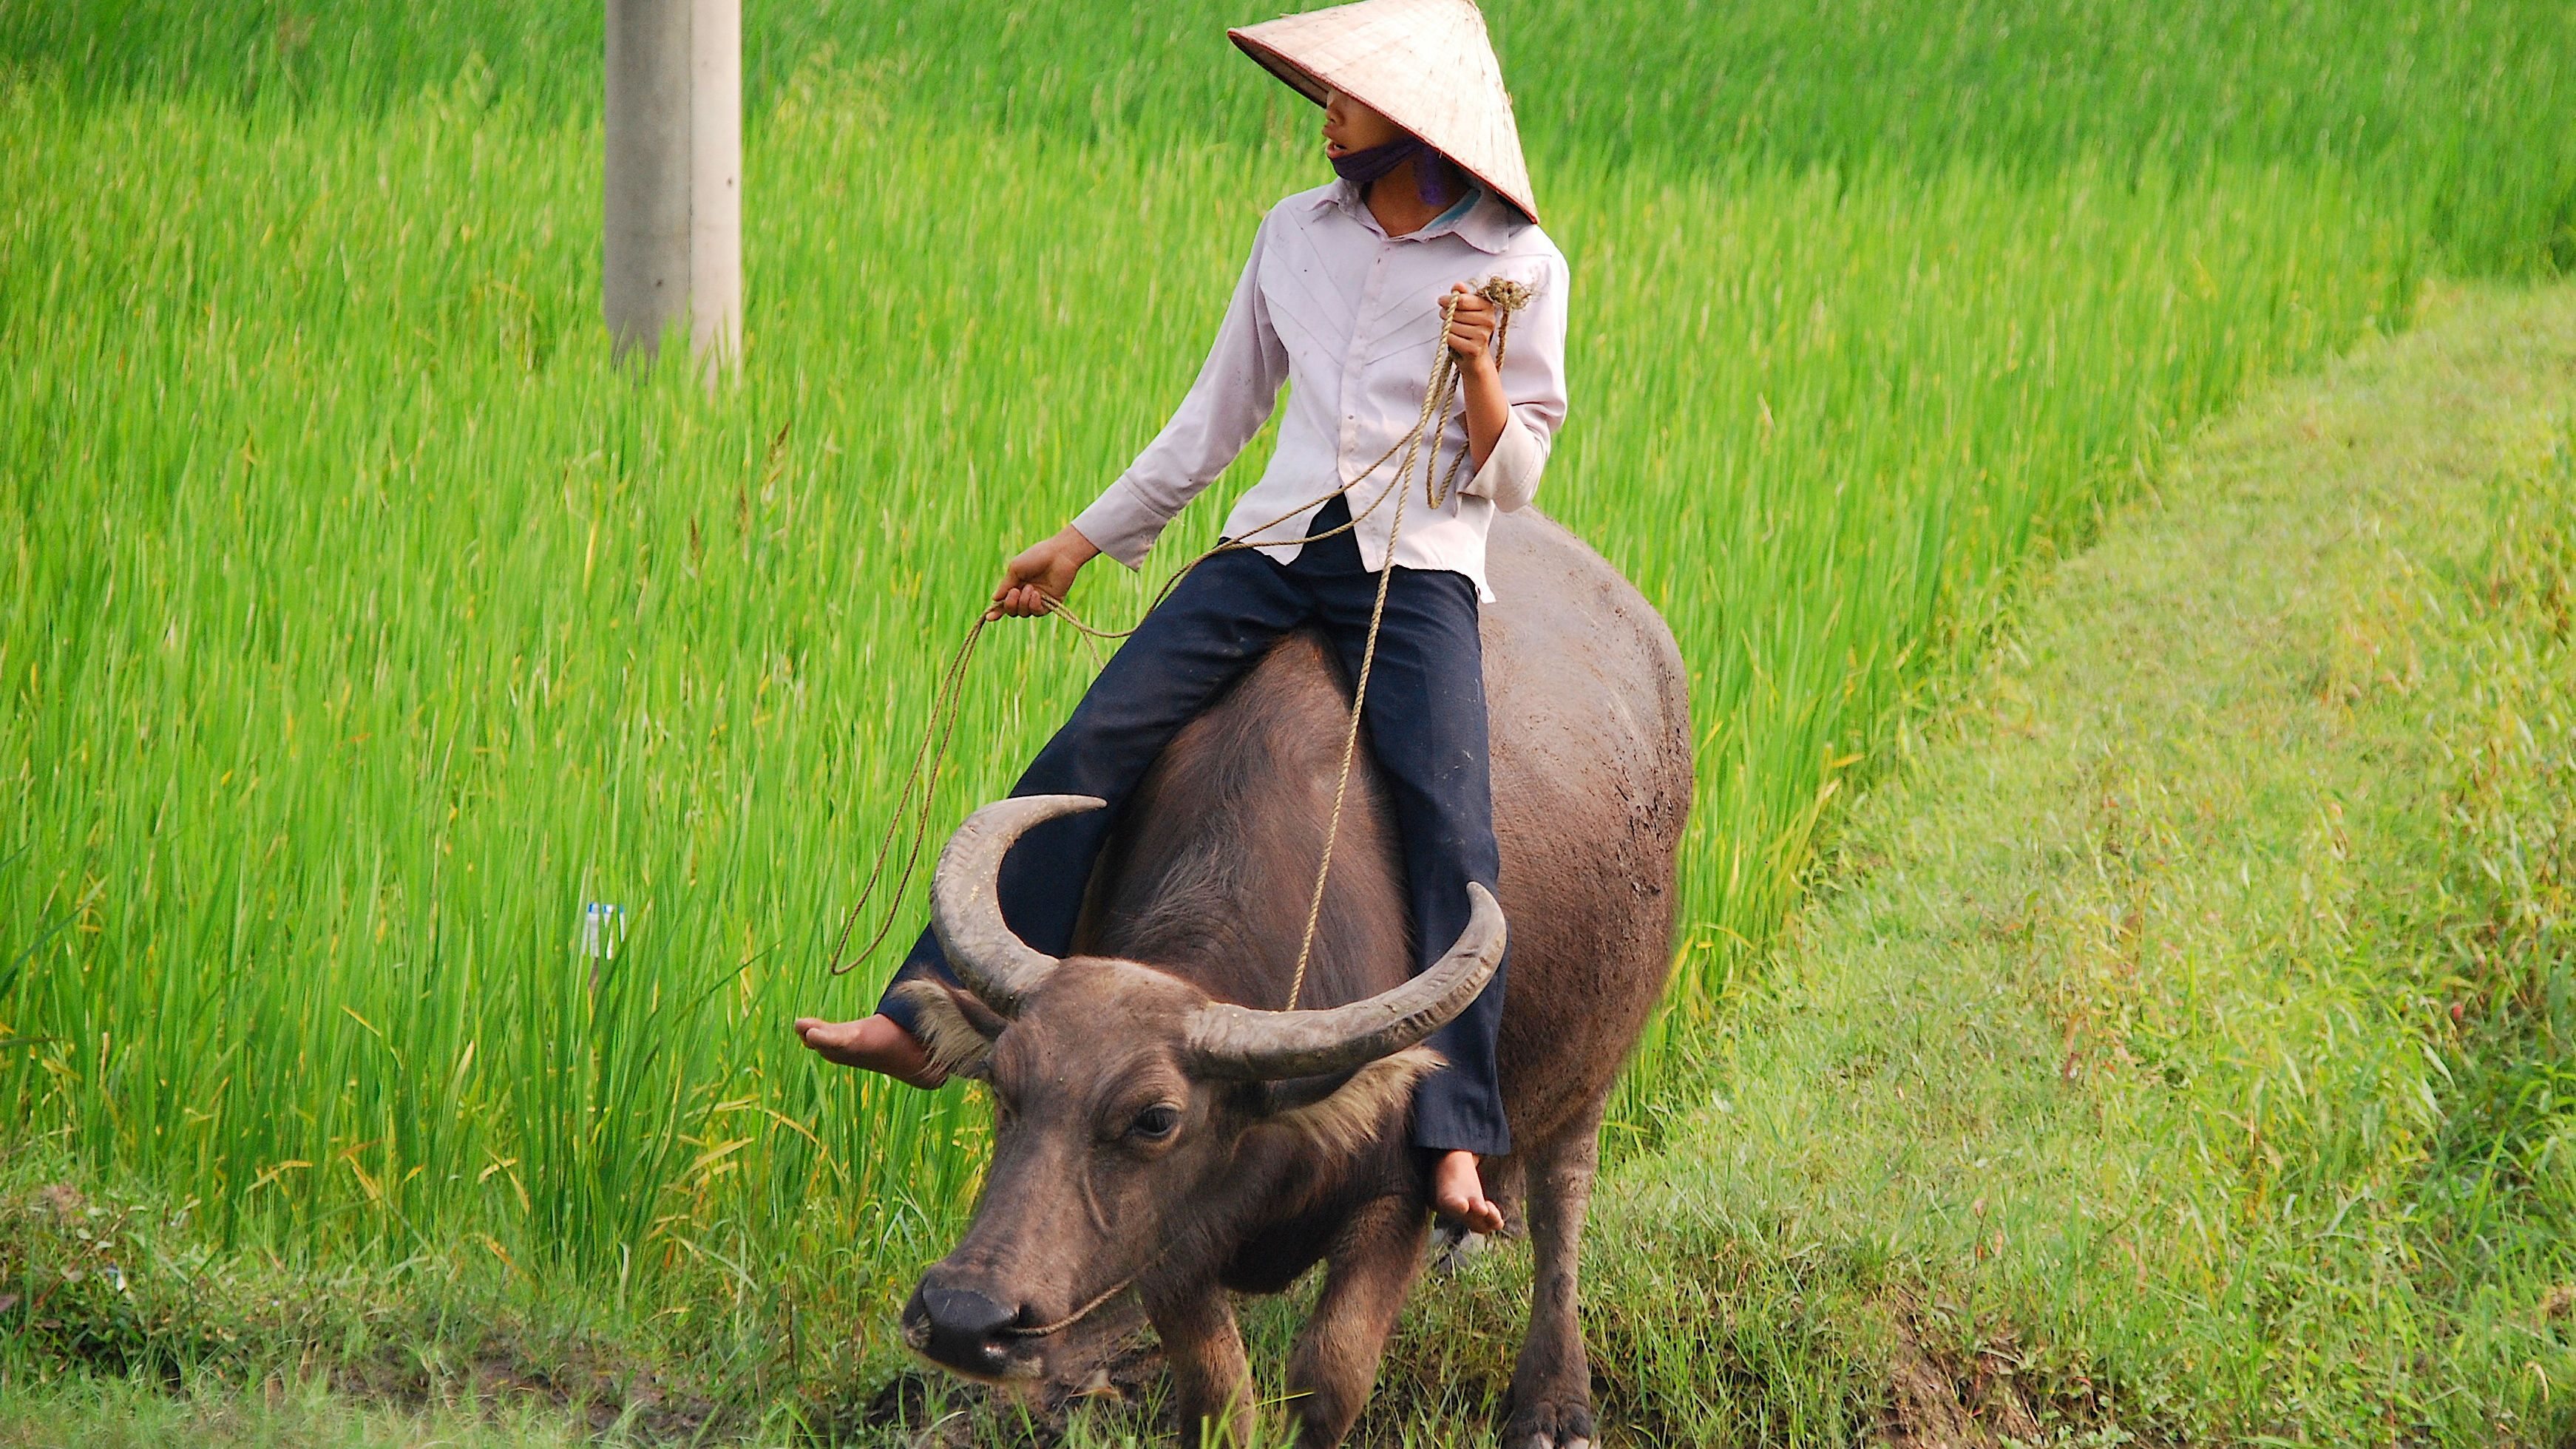 Man riding an Ox